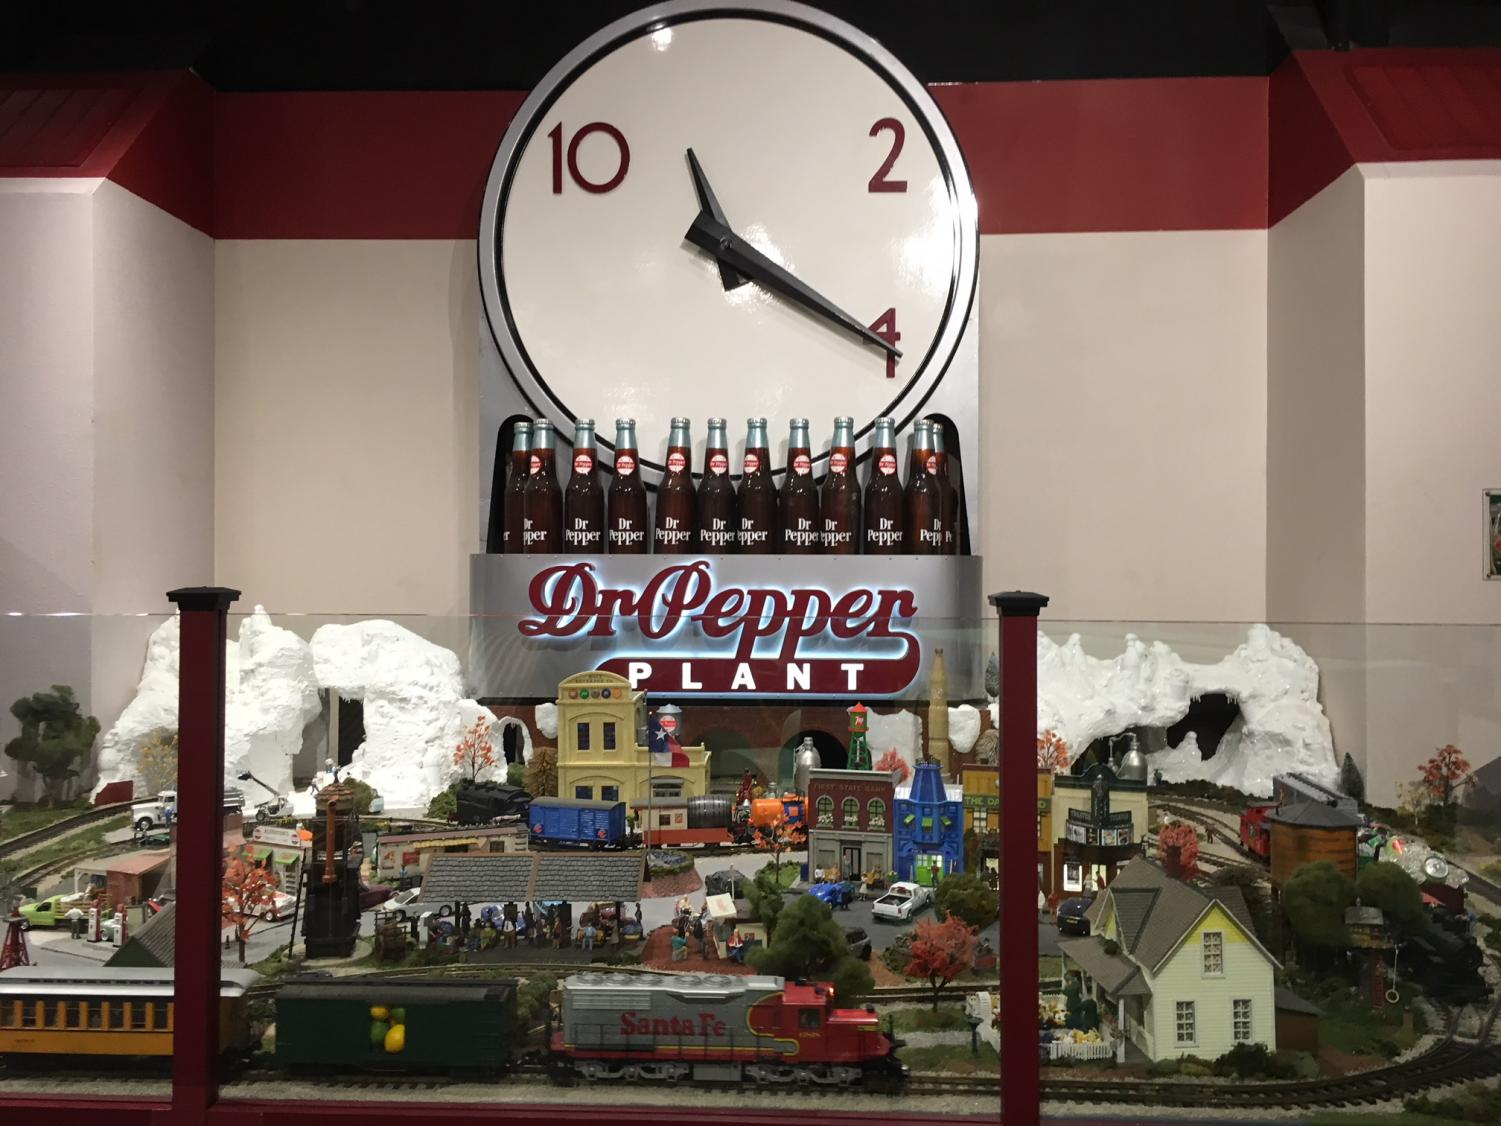 "One of the last attractions of the Dr. Pepper museum is the miniature town and Dr. Pepper conveyor belt, all under the classic clock logo. The logo was first used in the '20s and '30s with the slogan, ""Drink a bite to eat at 10, 2 and 4."